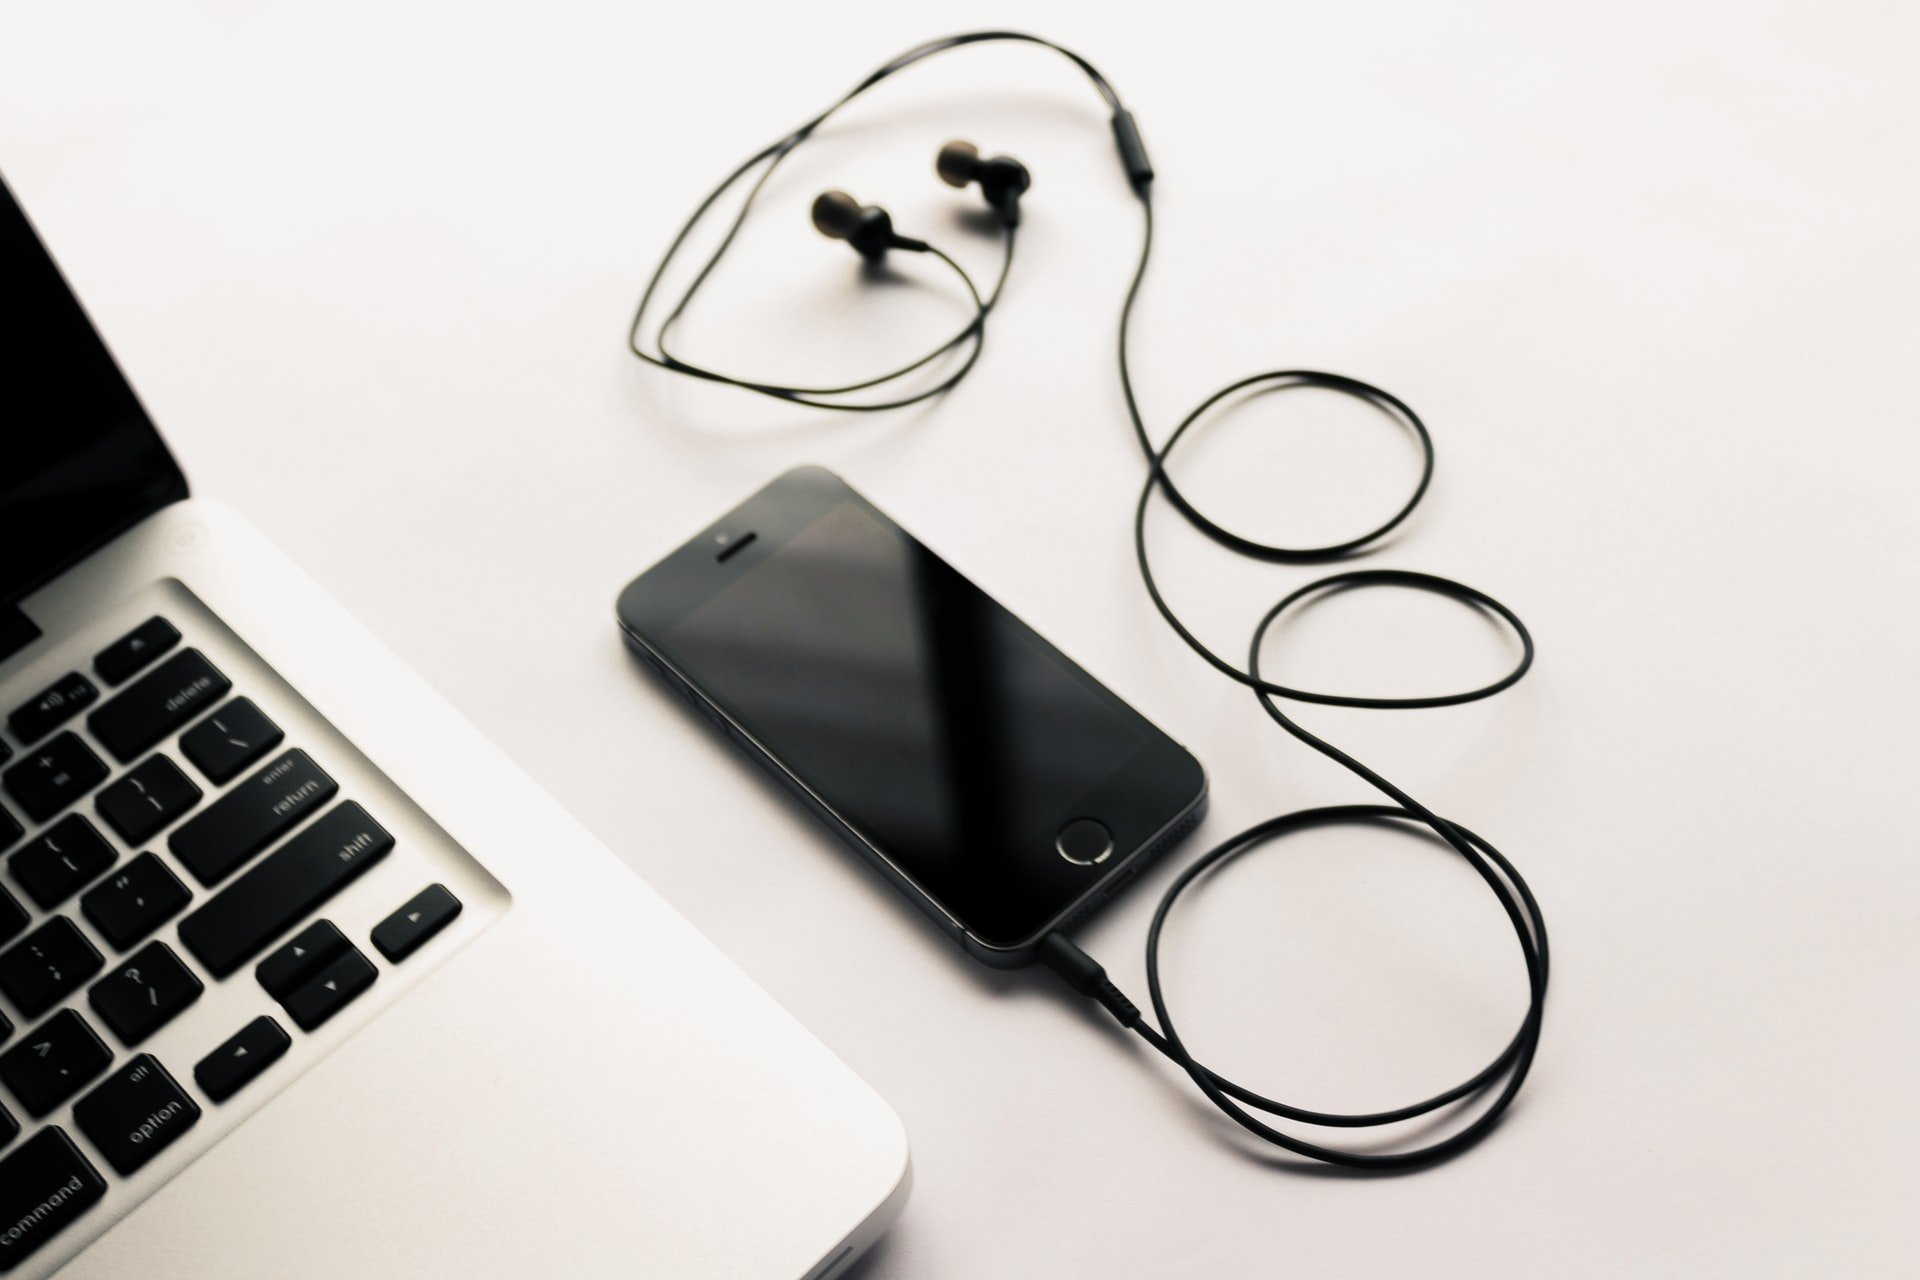 Best Tangle Free Earbuds With Mic And Flat Cable